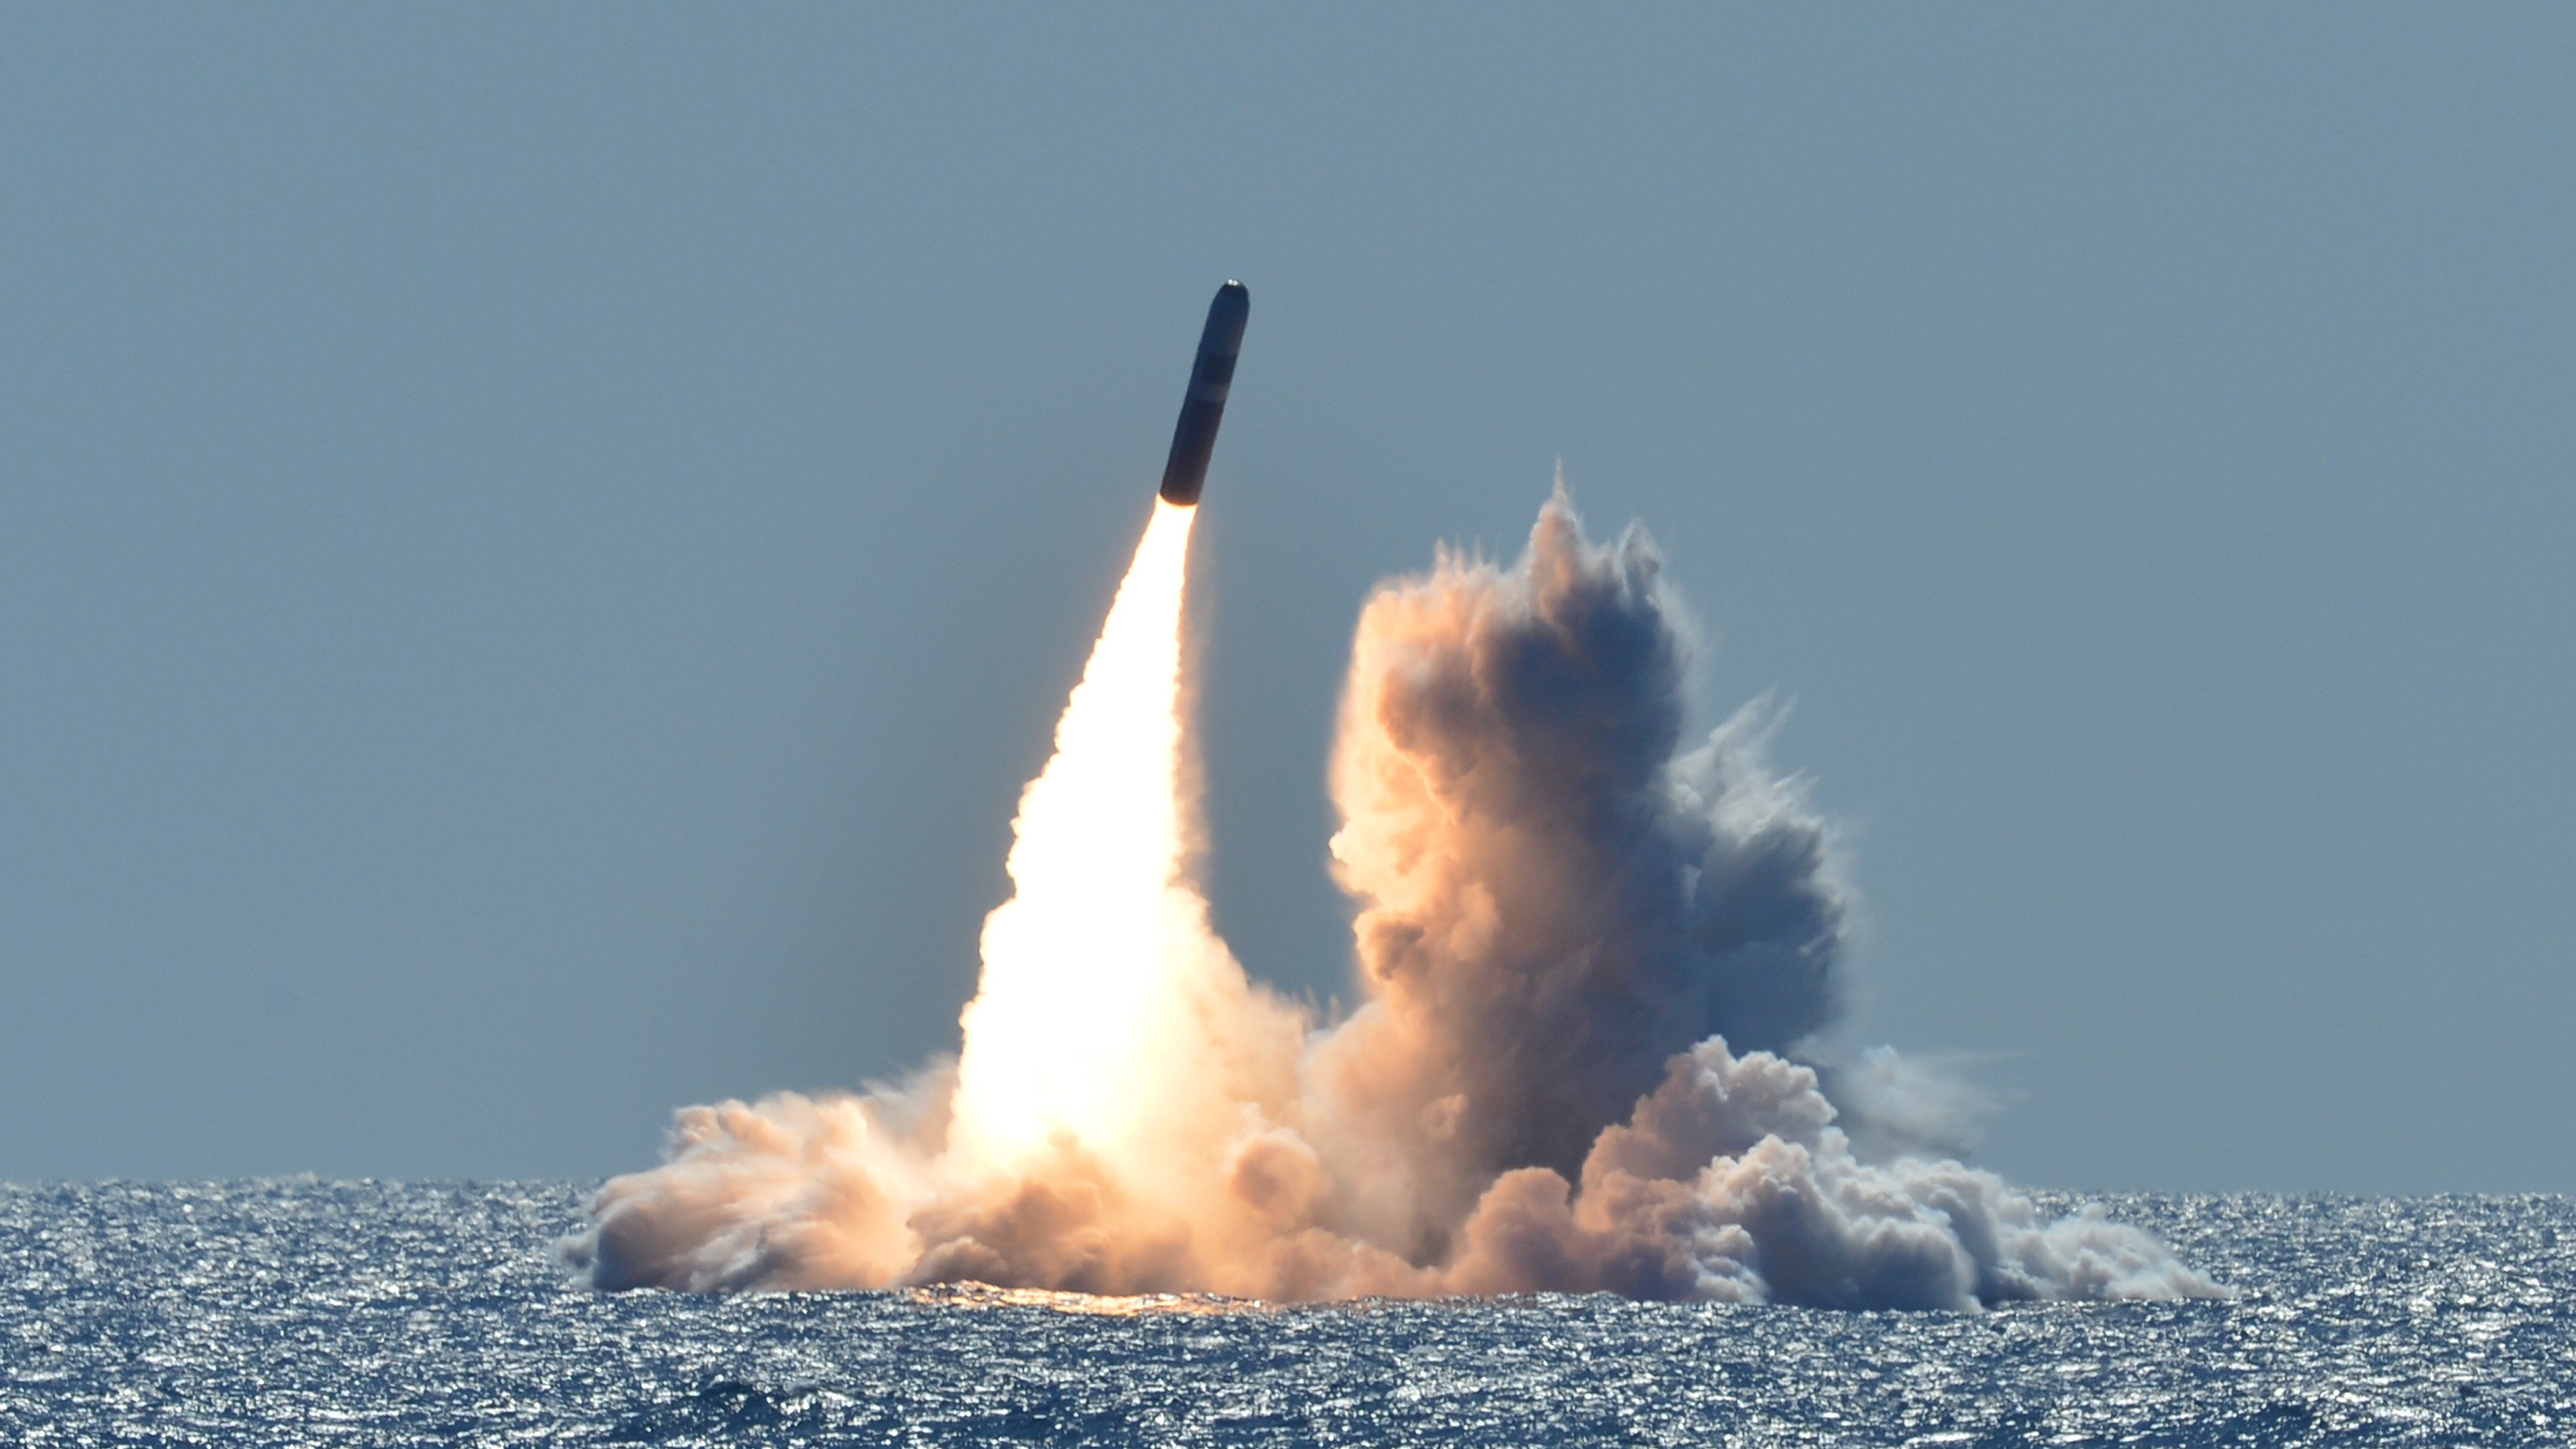 An unarmed Trident II D5 missile launches from the Ohio-class ballistic missile submarine USS Nebraska off the coast of California on March 26, 2008. (U.S. Navy photo by Mass Communication Specialist 1st Class Ronald Gutridge/Released)